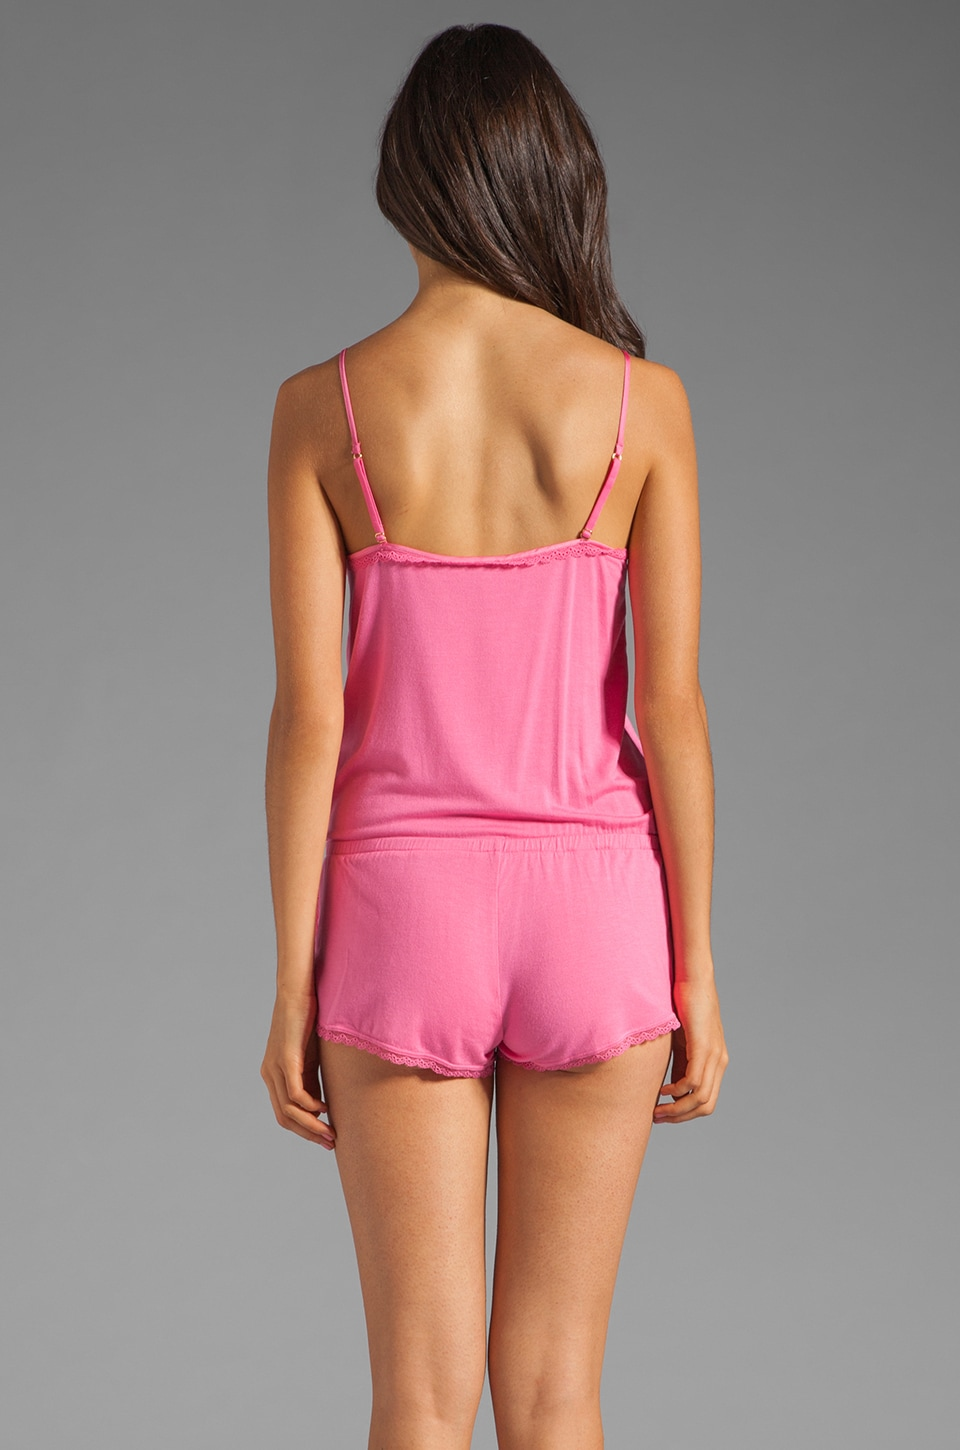 Juicy Couture Romper in Light Helium Pink